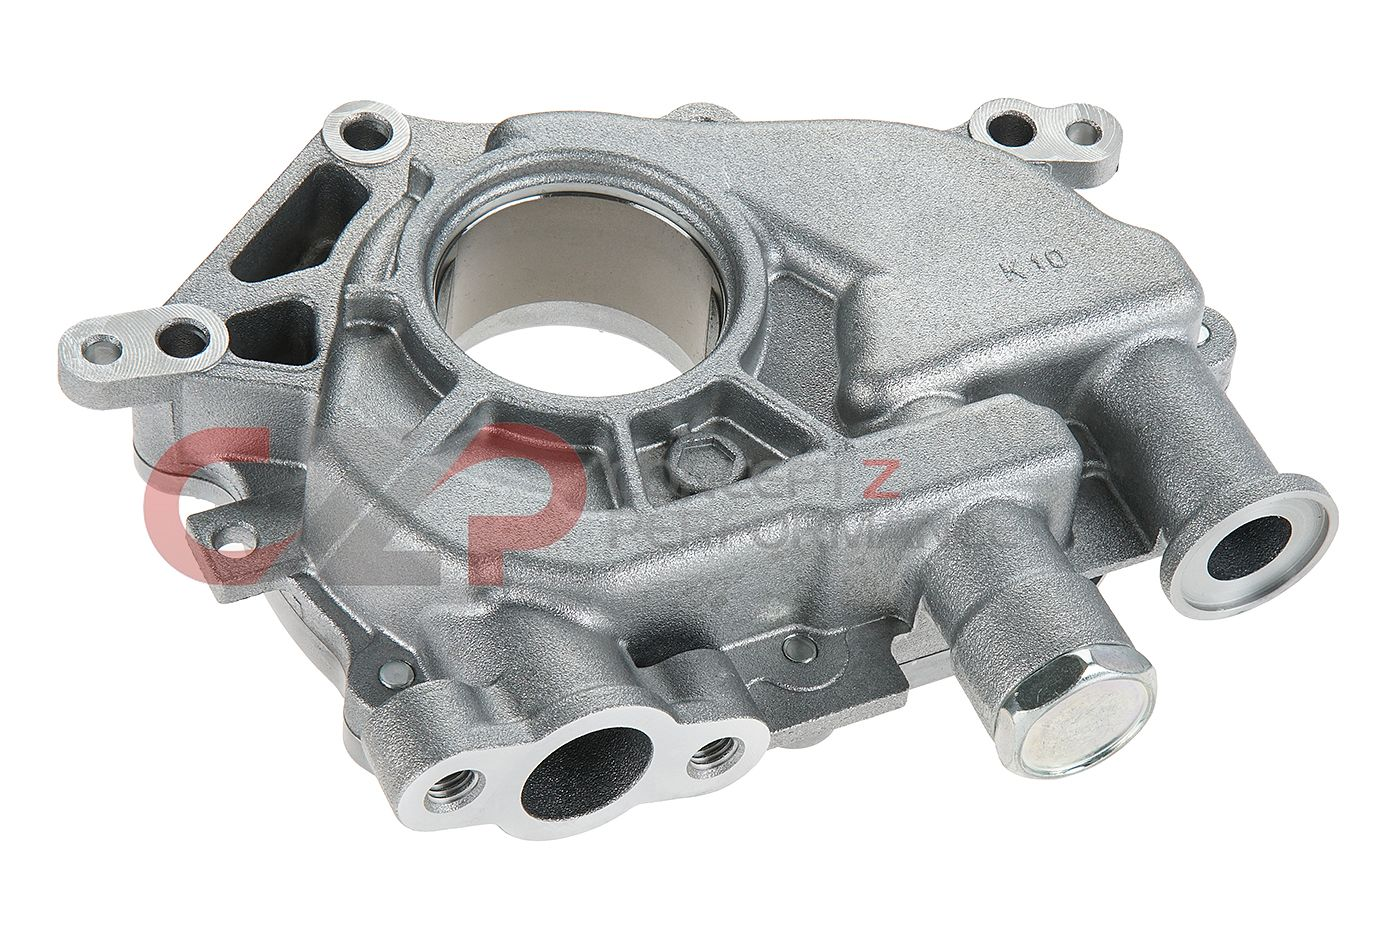 Nismo Competition Oil Pump, HR Engines - Nissan 350Z 370Z / Infiniti G35 G37 Q40 Q50 Q60